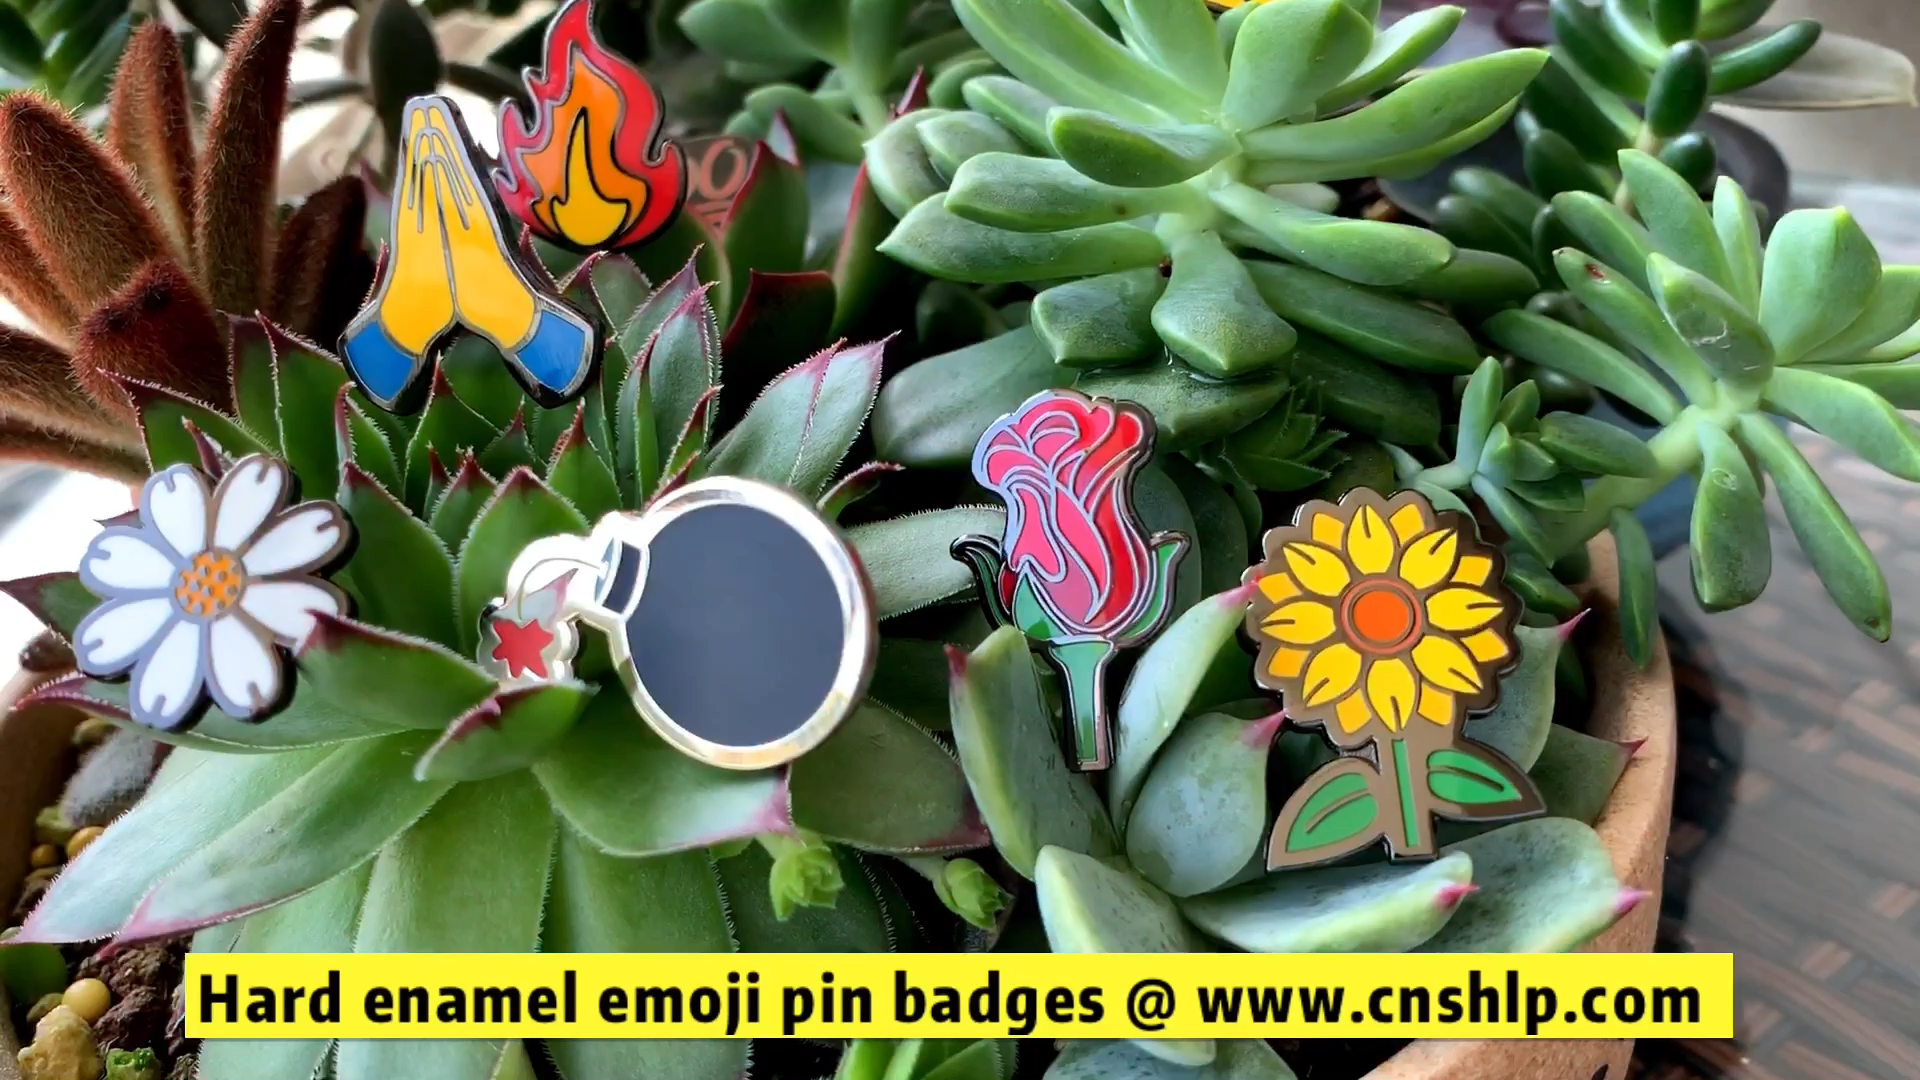 No MOQ cheap metal hard enamel magnet badge pins with custom logo